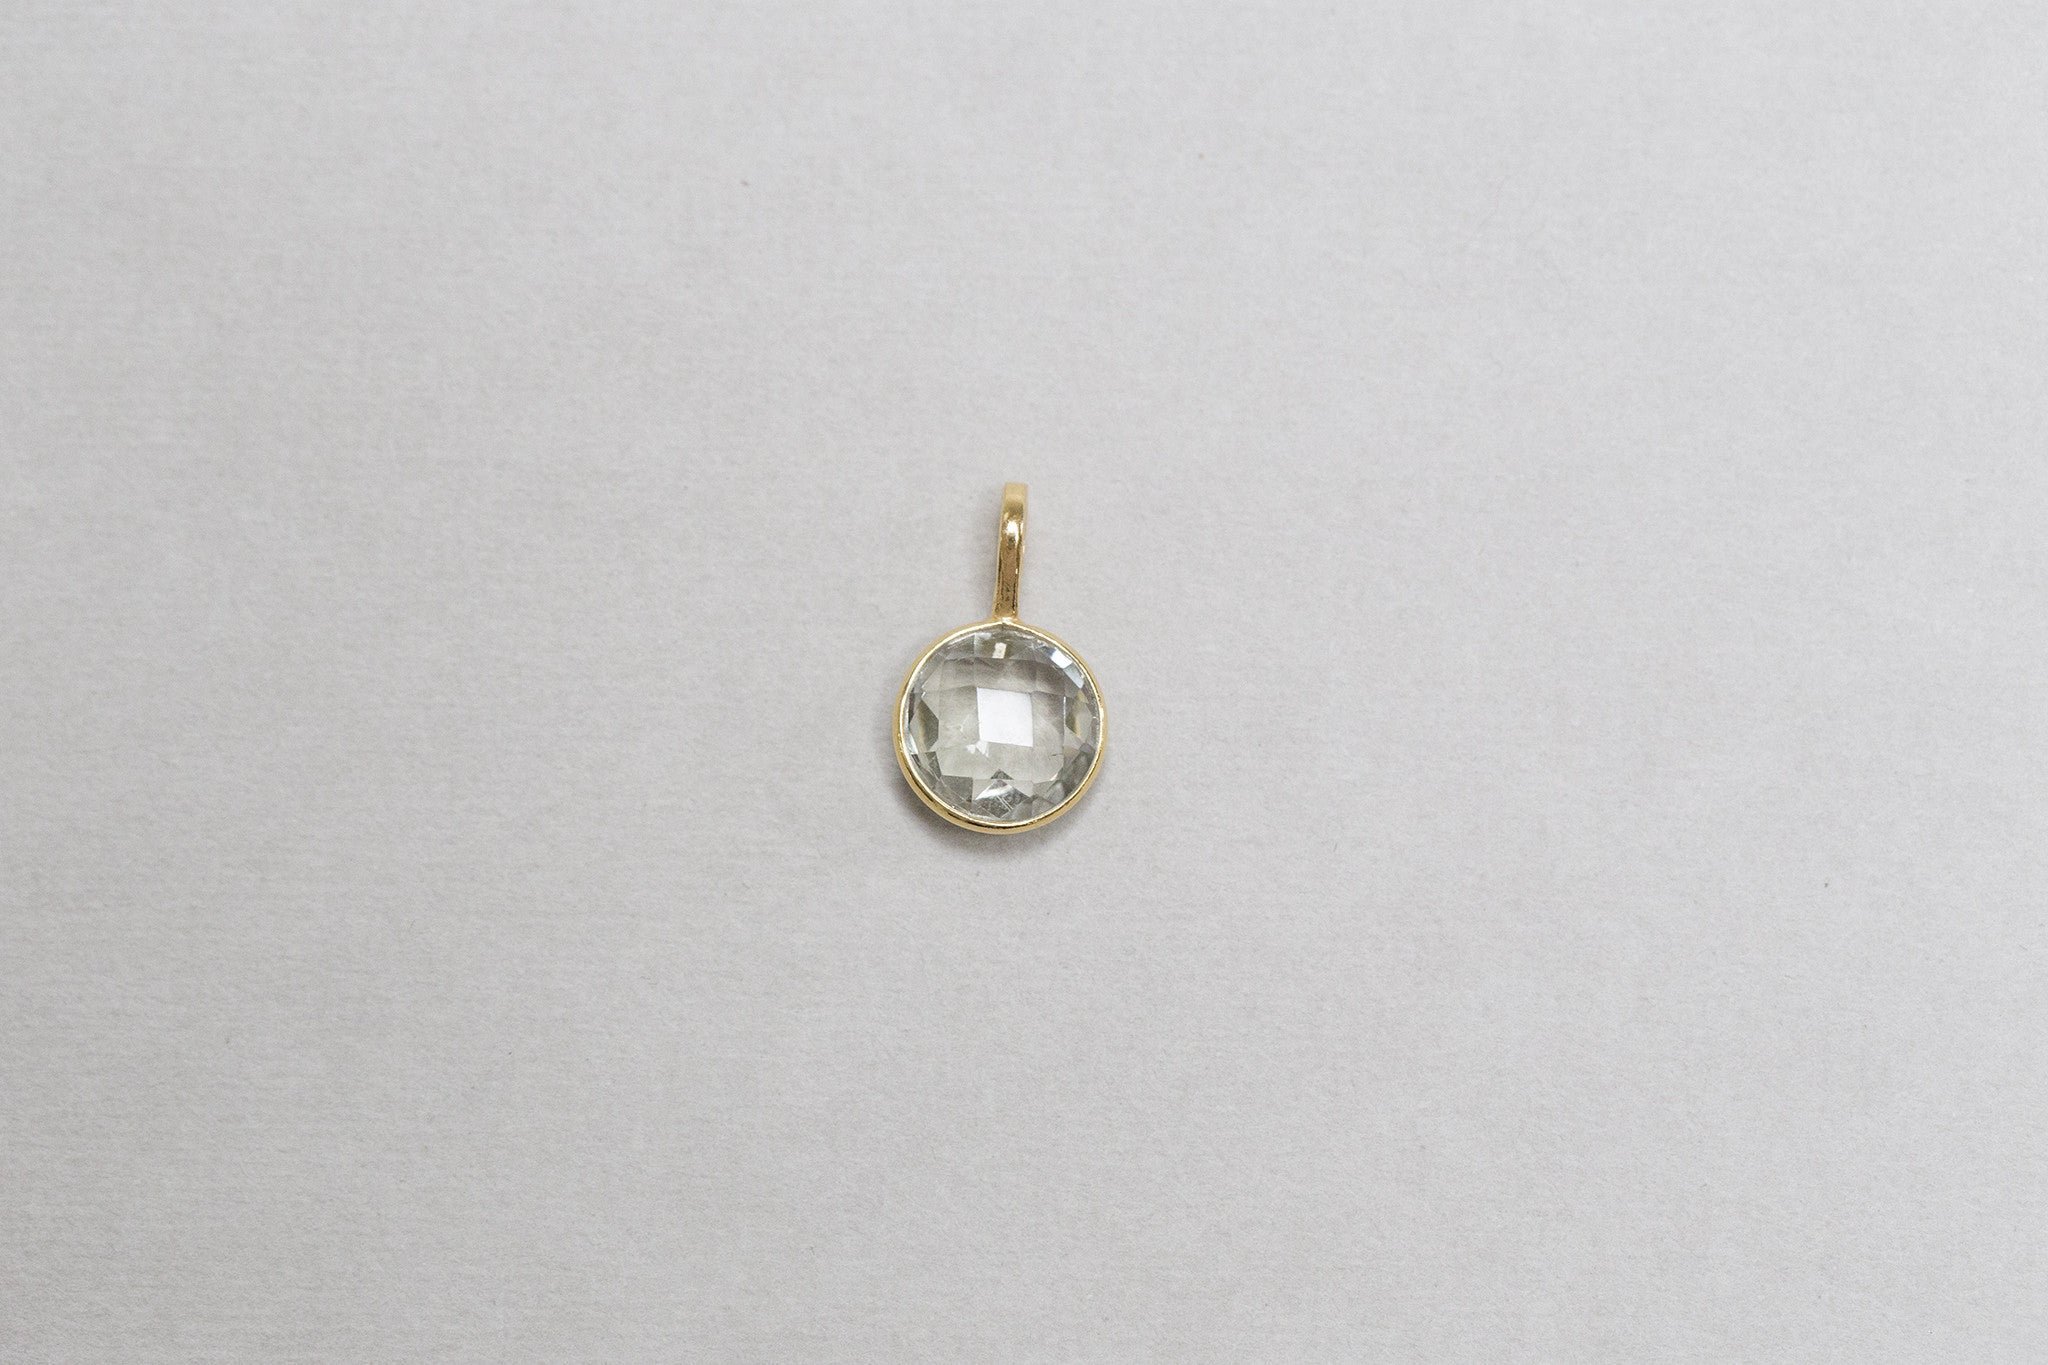 green amethyst charm by Rodgers and Rodgers, set in gold plated silver bezel